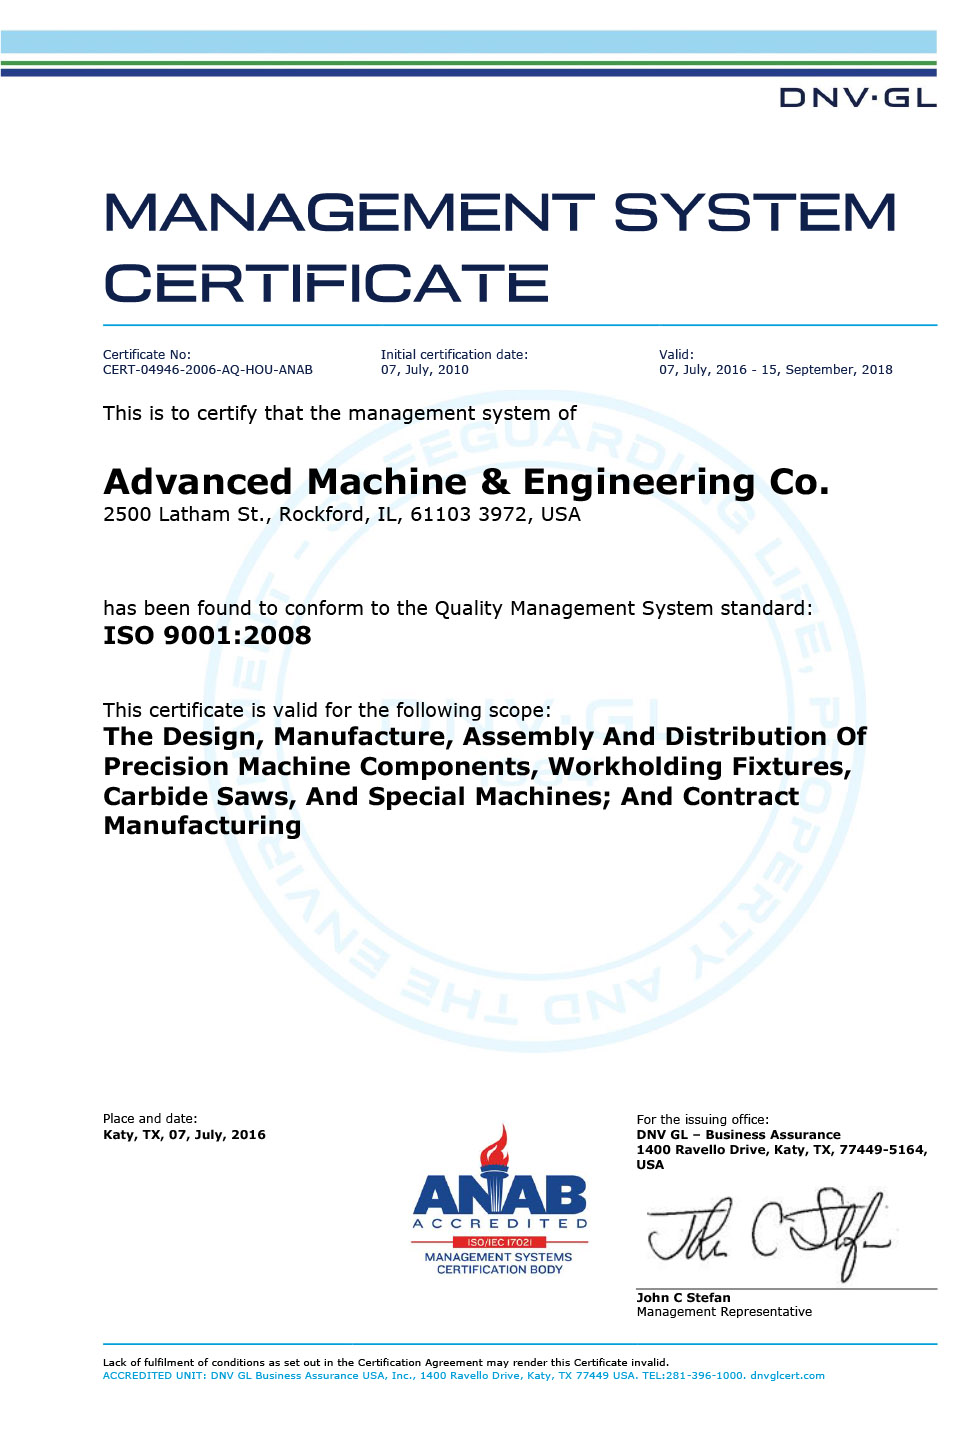 Iso Certification Advanced Machine Engineering Co